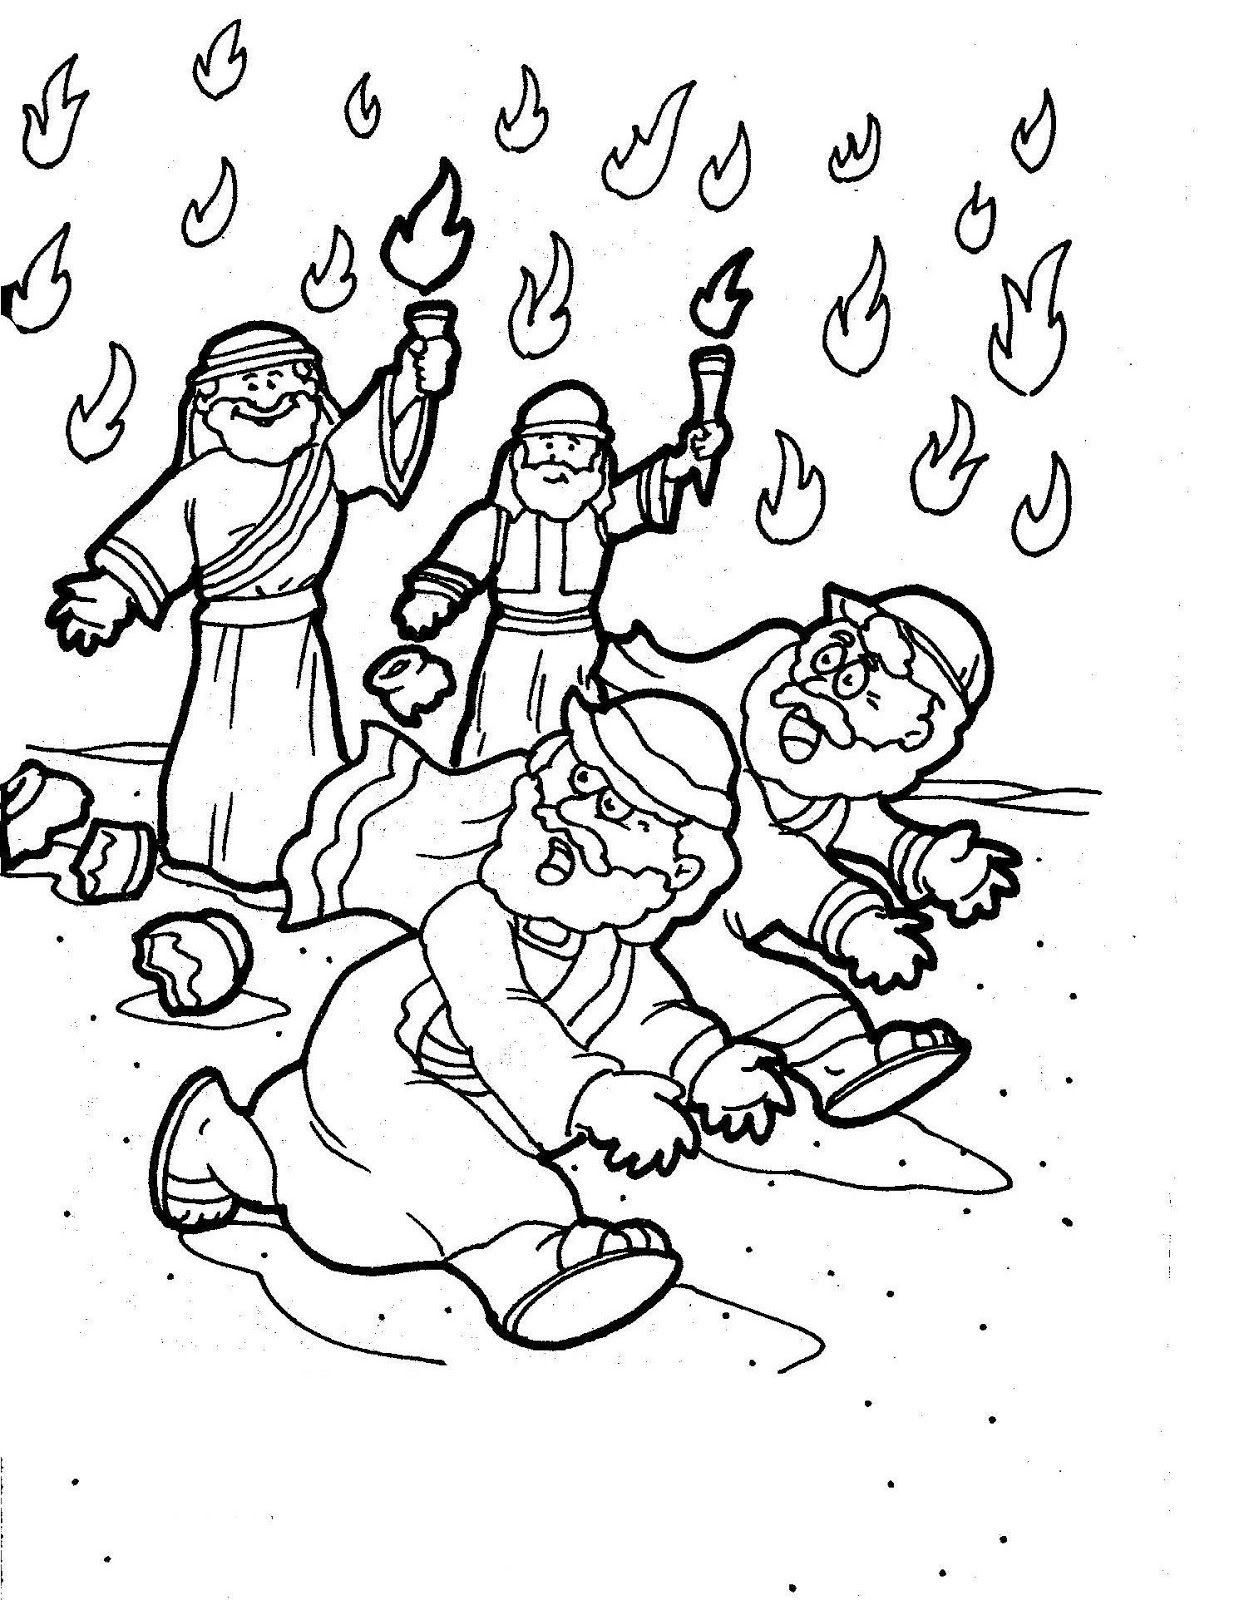 Printable Coloring Gideon Torch Coloring Page Coloring Page Gideon